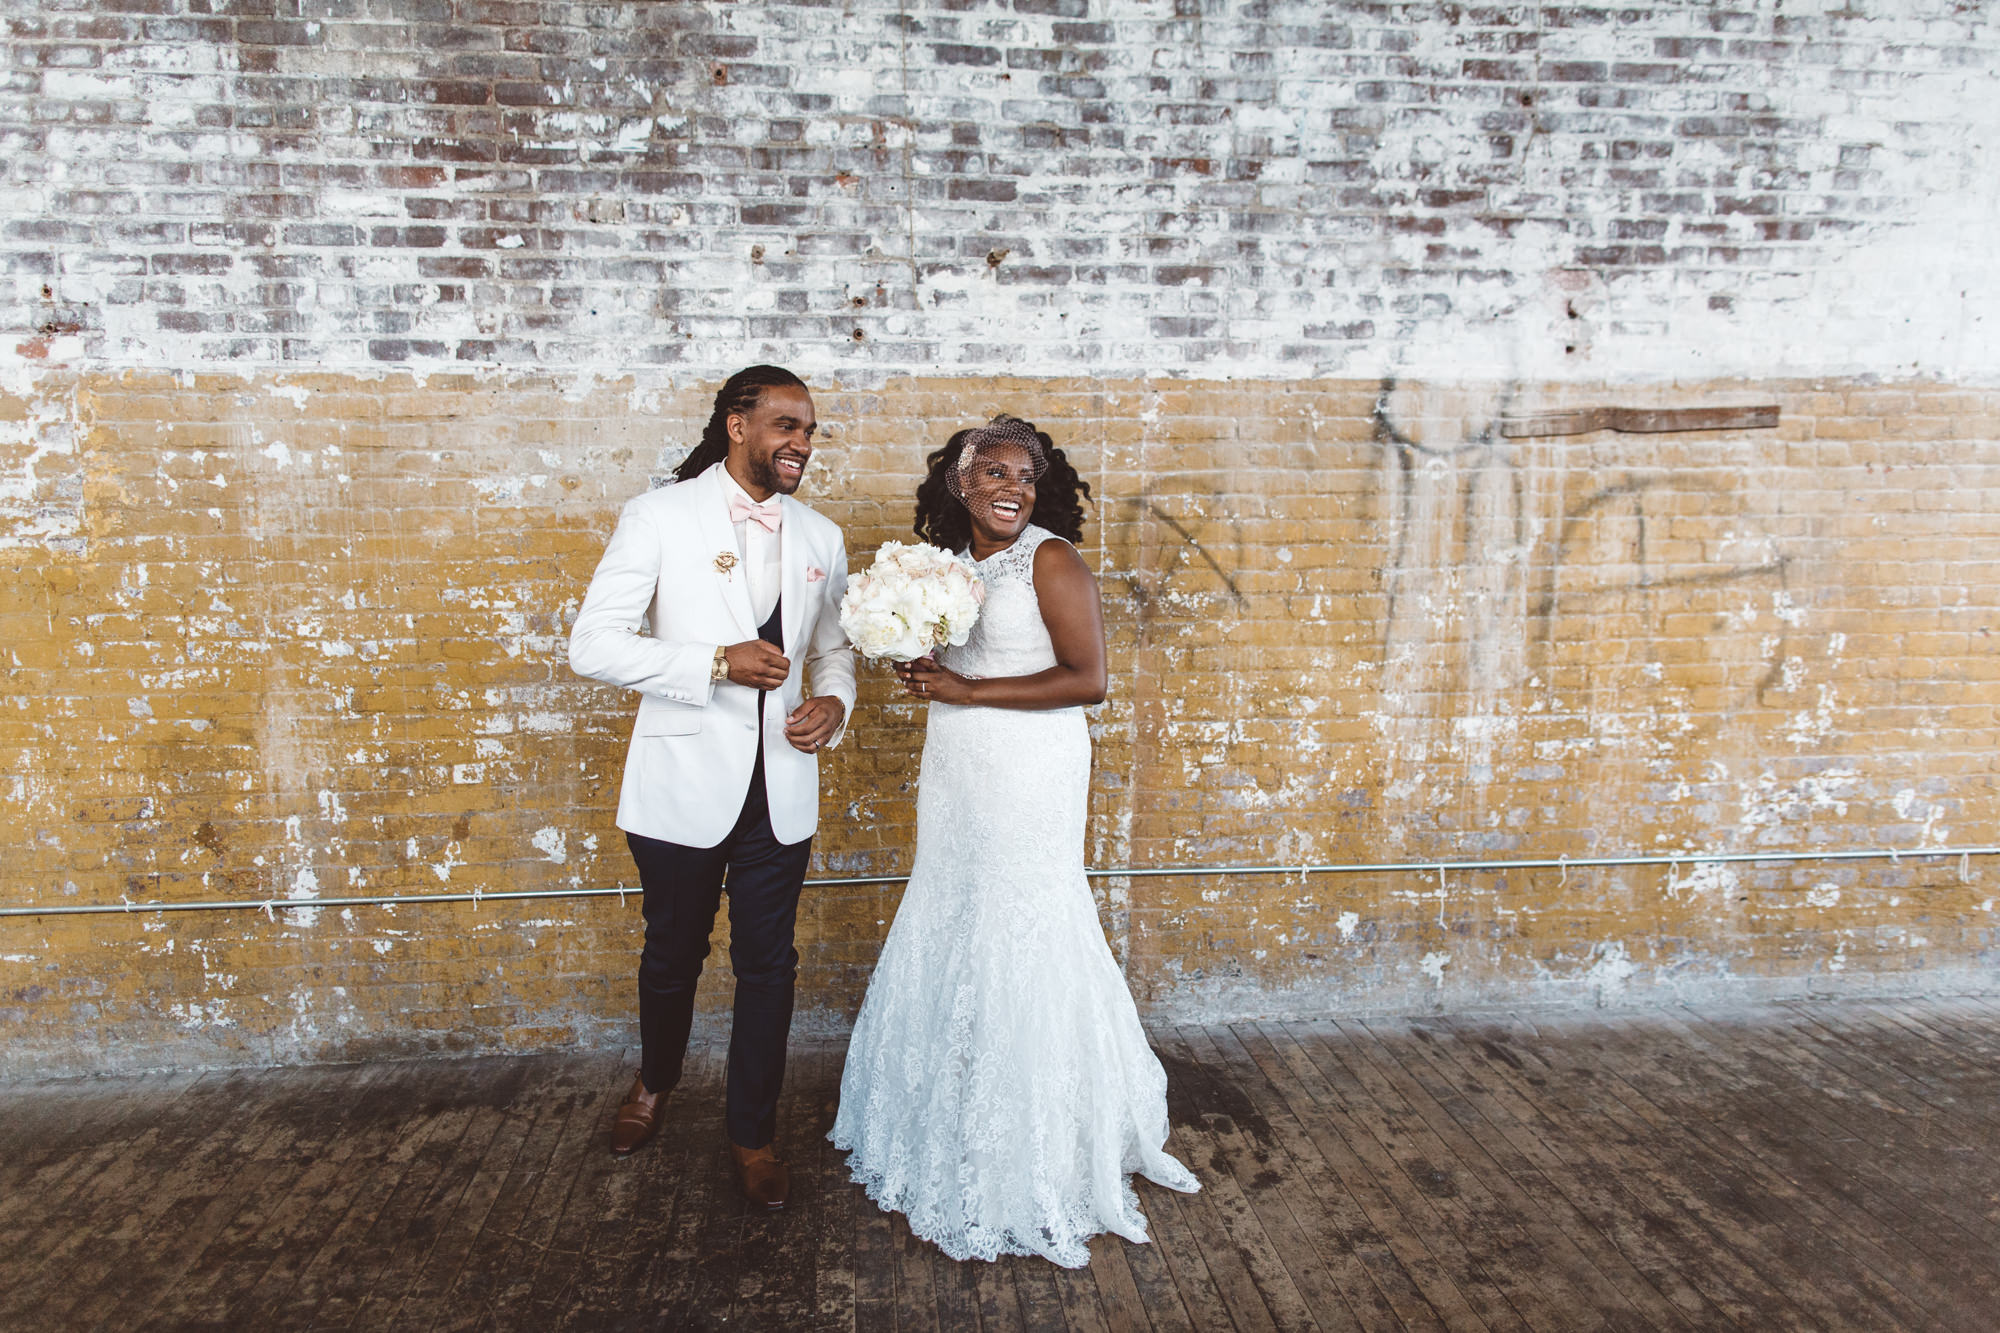 Dorian + Karis | Brooklyn, New York